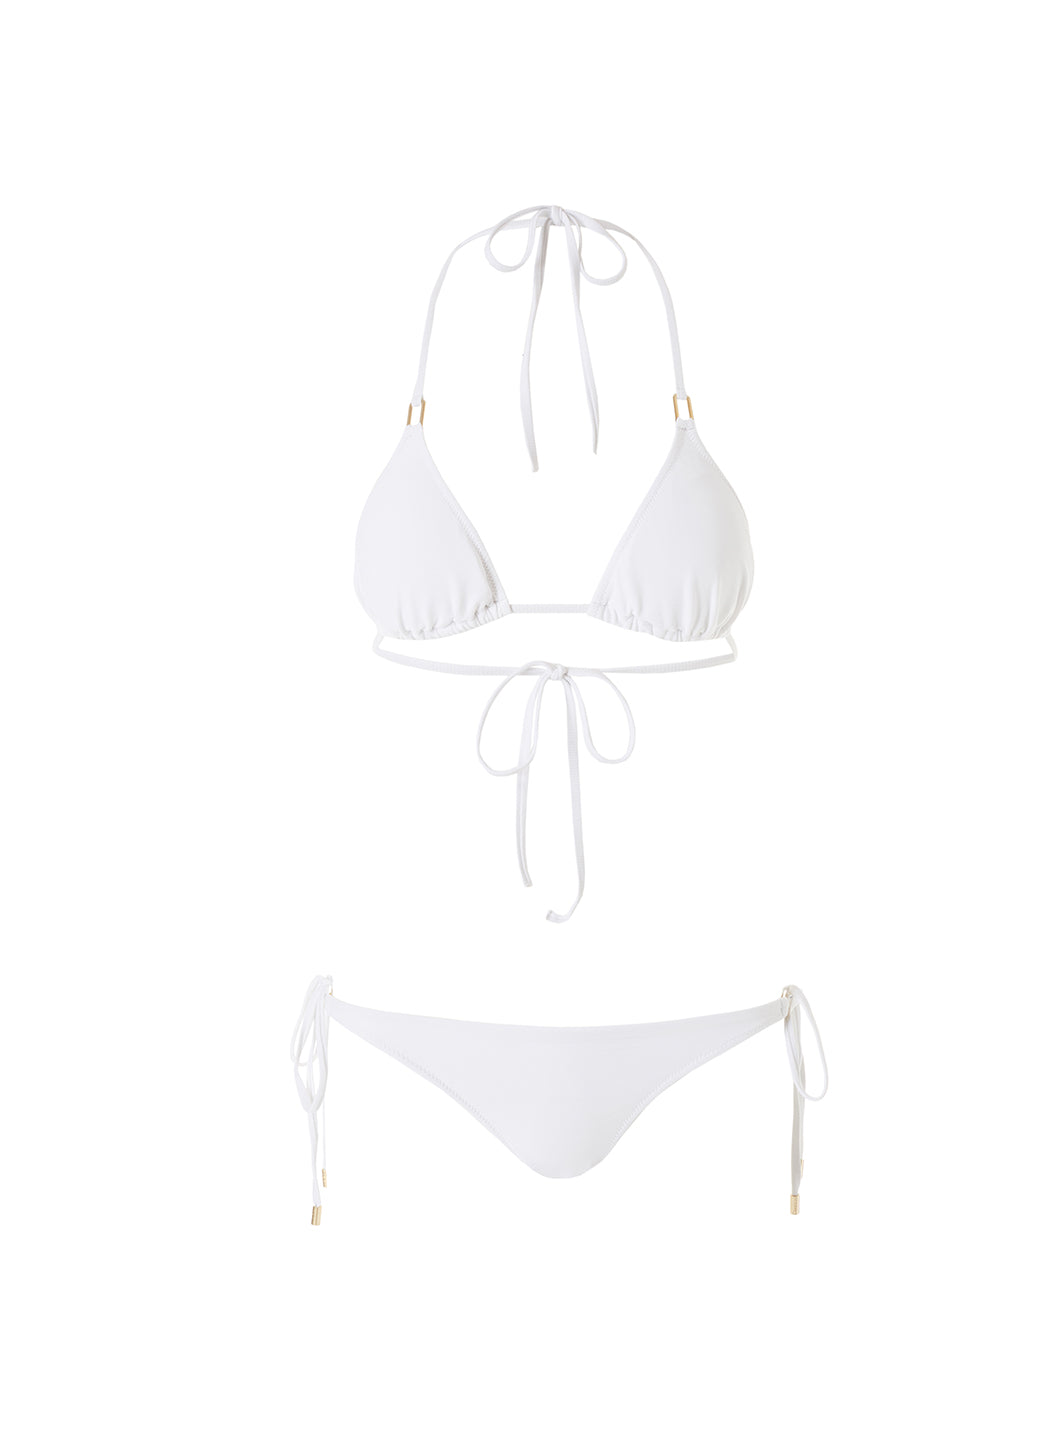 Exclusive Cancun White Ribbed Classic Triangle Bikini - Melissa Odabash Swimwear